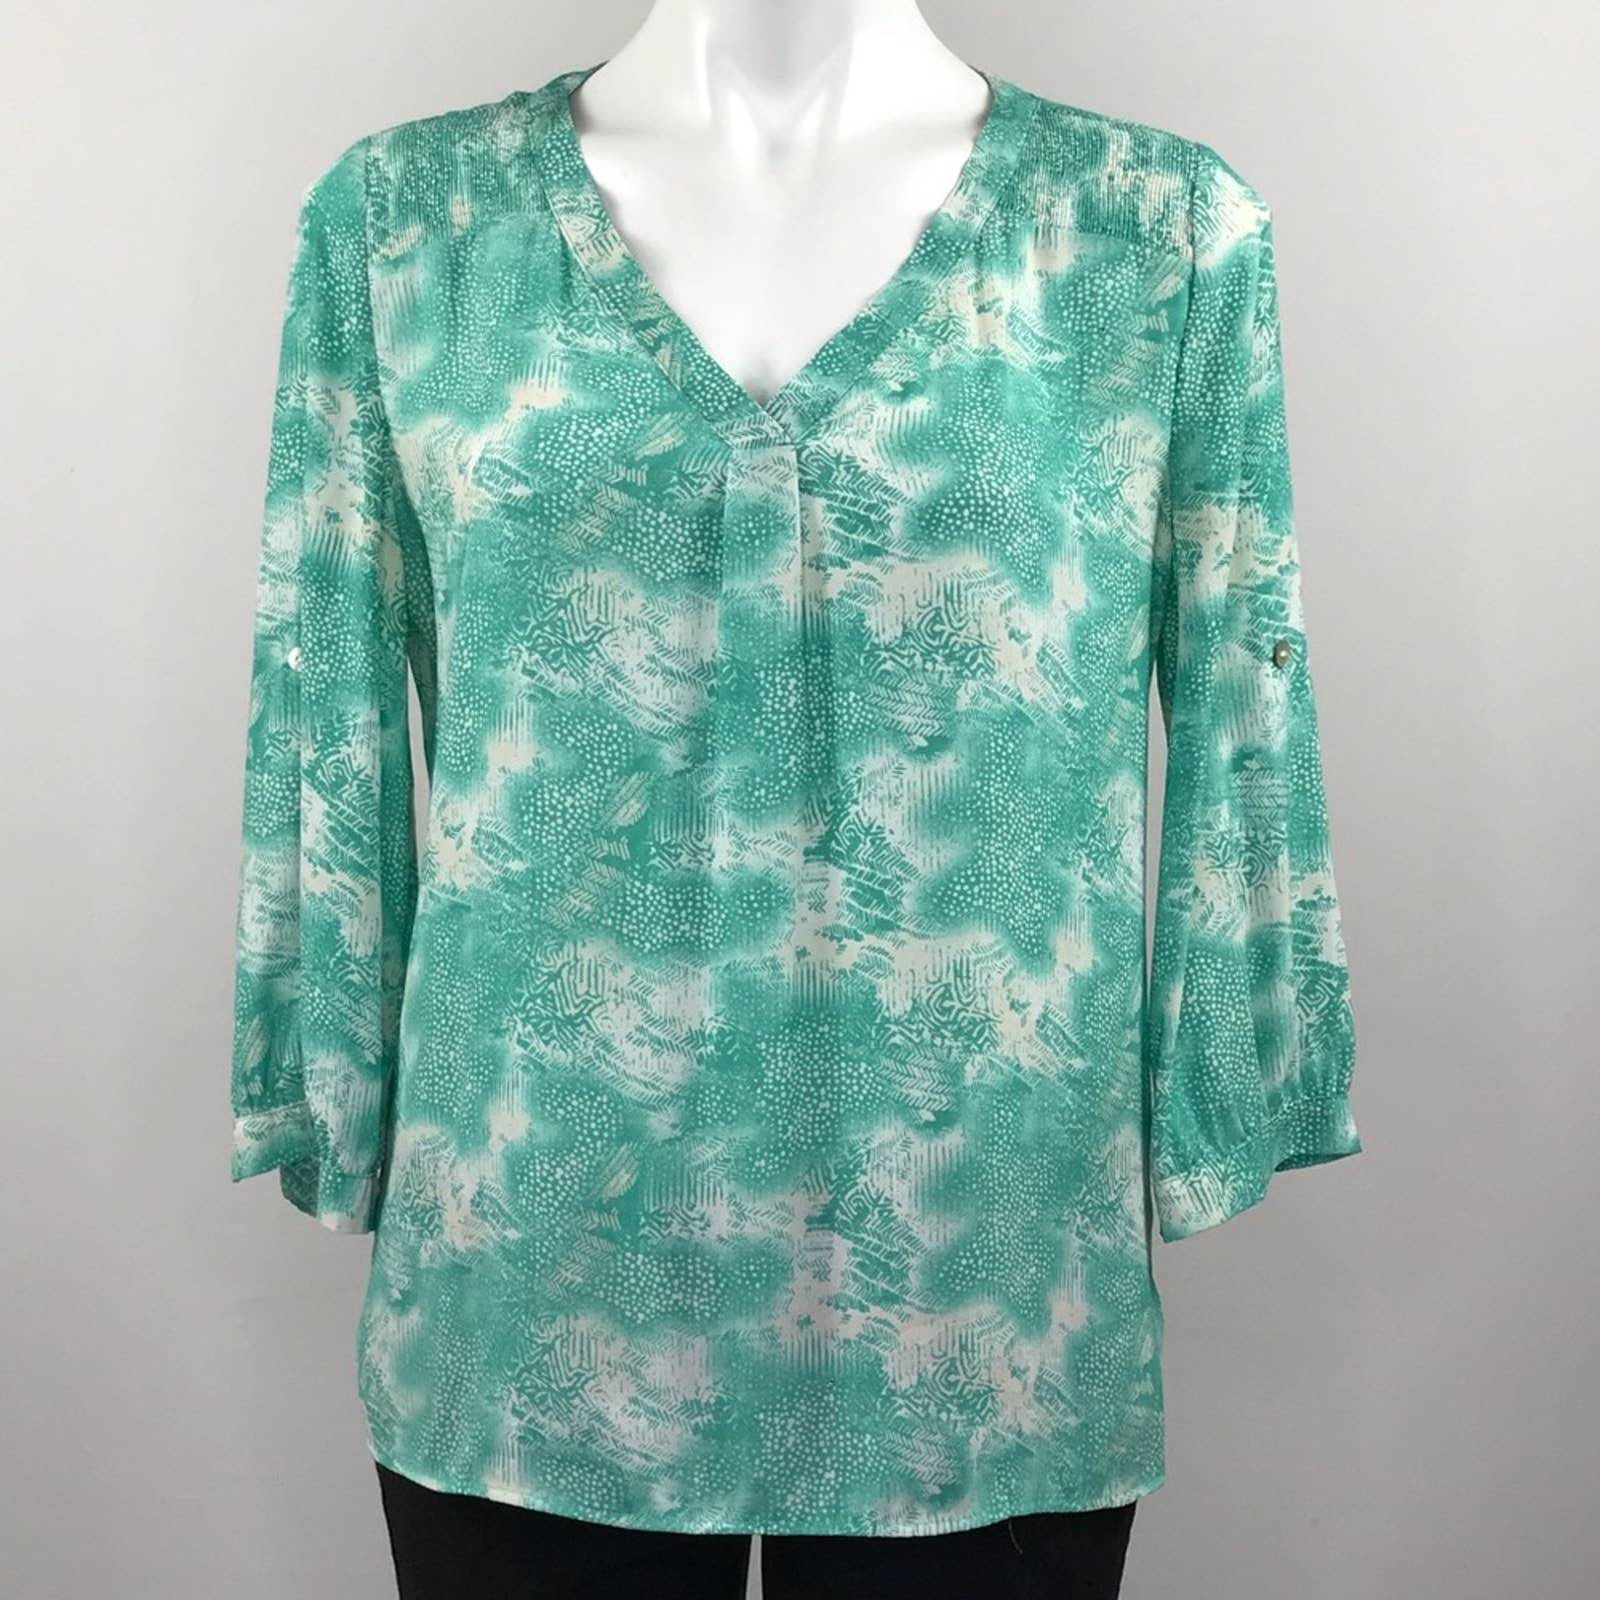 41 Hawthorn teal and white top